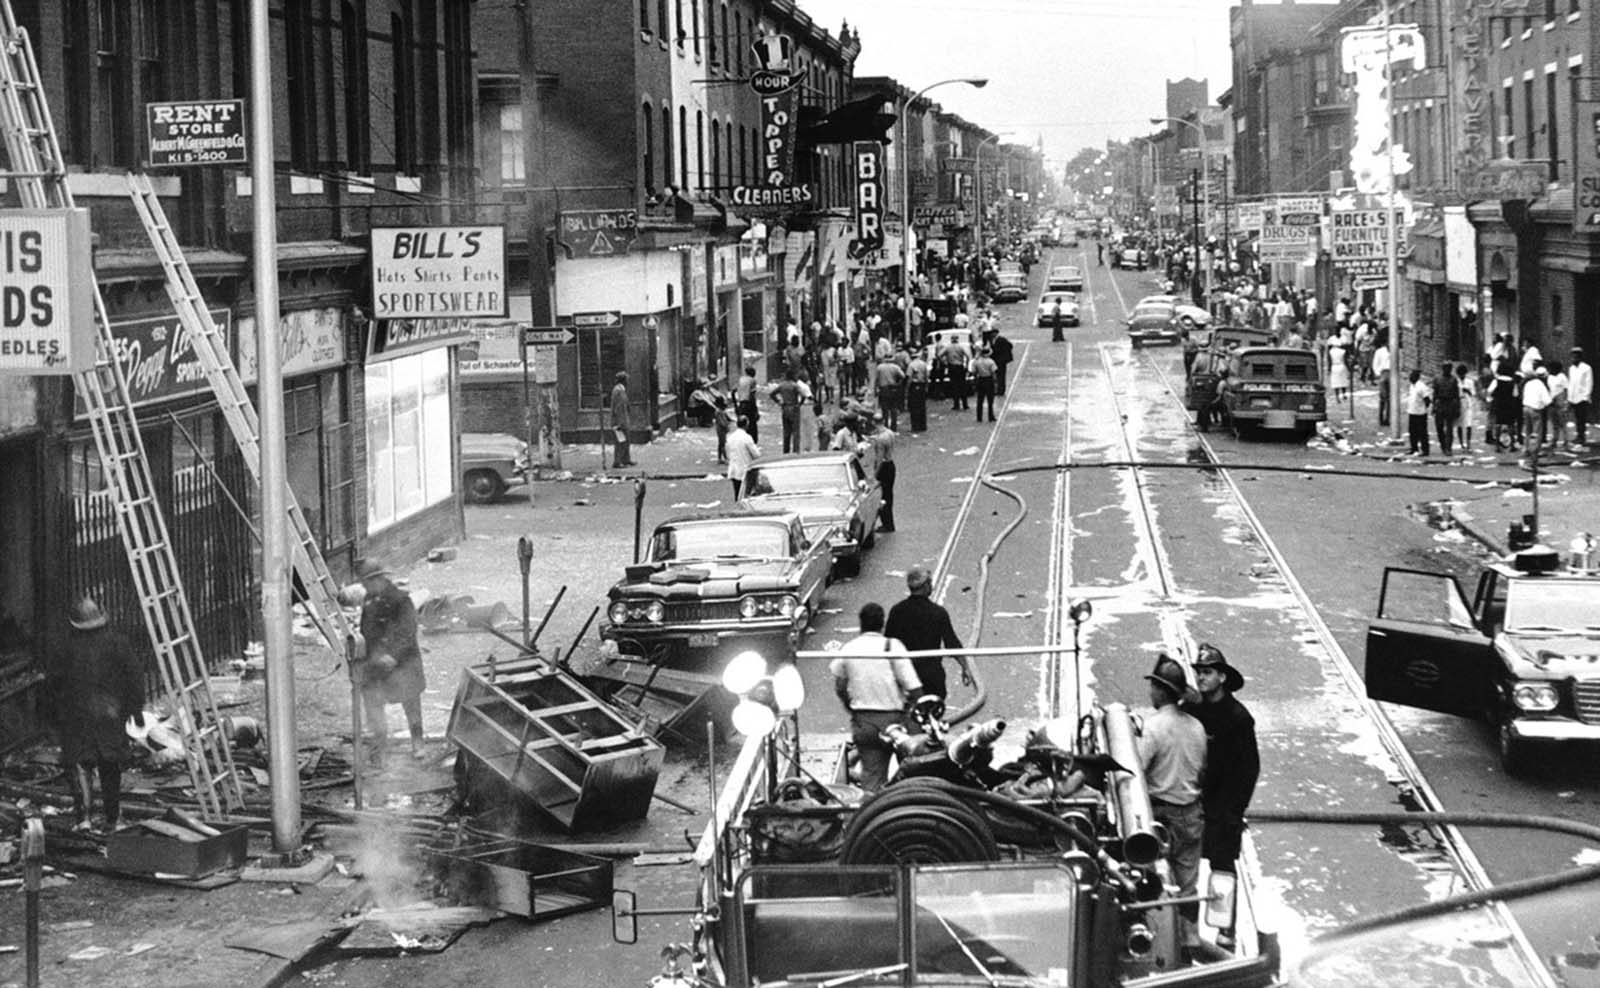 This view looking west from 15th Street on Columbia Ave. shows Main Street was involved in rioting in the predominantly black area of North Philadelphia during the previous night and continuing into August 29, 1964. At left, firemen clear smoldering rubble from wrecked store. Demonstrators, bystanders and police line street in background. Looting was widespread and damage heavy. At least 50 persons were injured including 27 policemen.